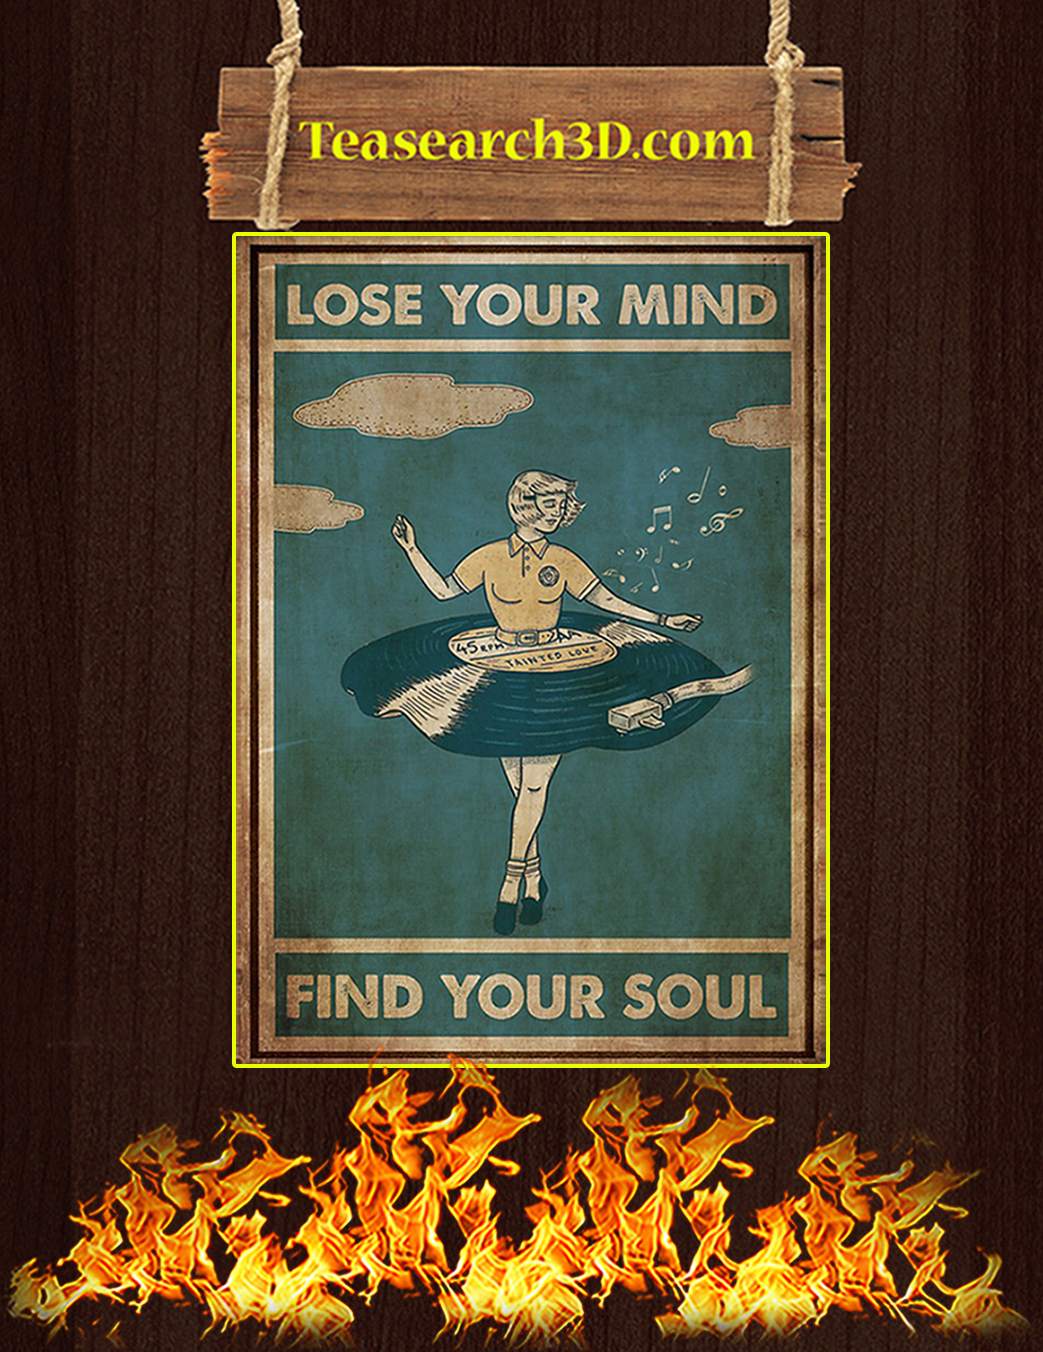 Vinyl dress lose your mind find your soul poster A1